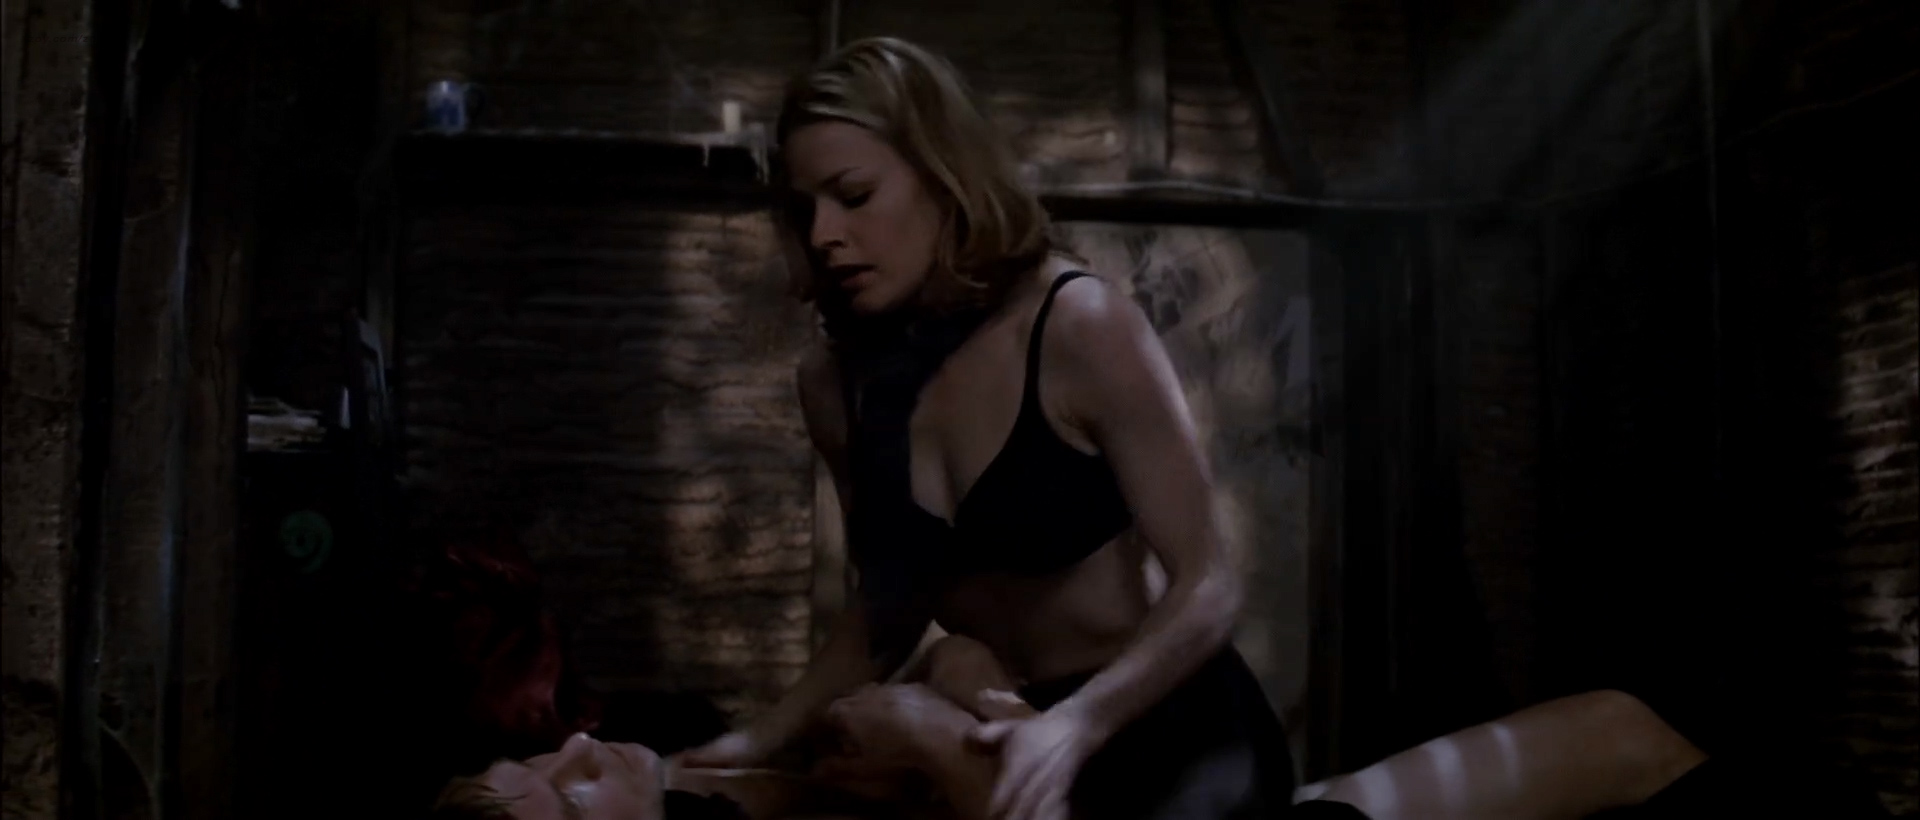 Elisabeth Shue hot sexy some sex too – The Saint (1997) hd1080p WEB-DL